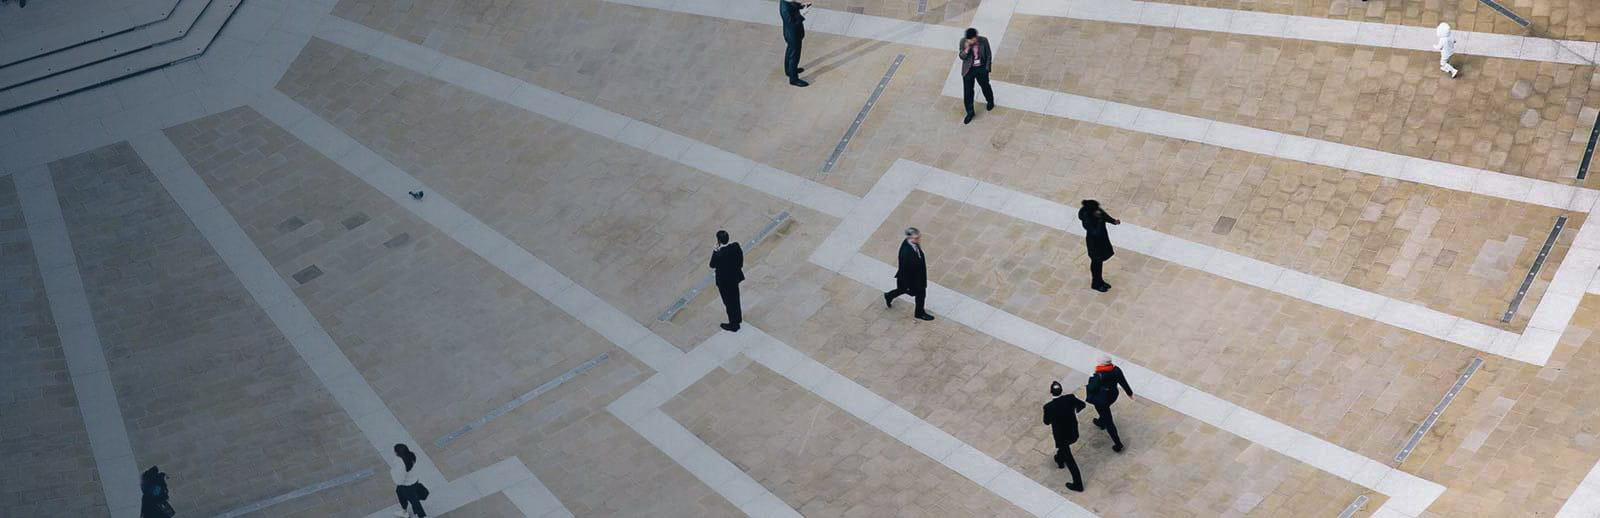 An aerial view of people in suits walking